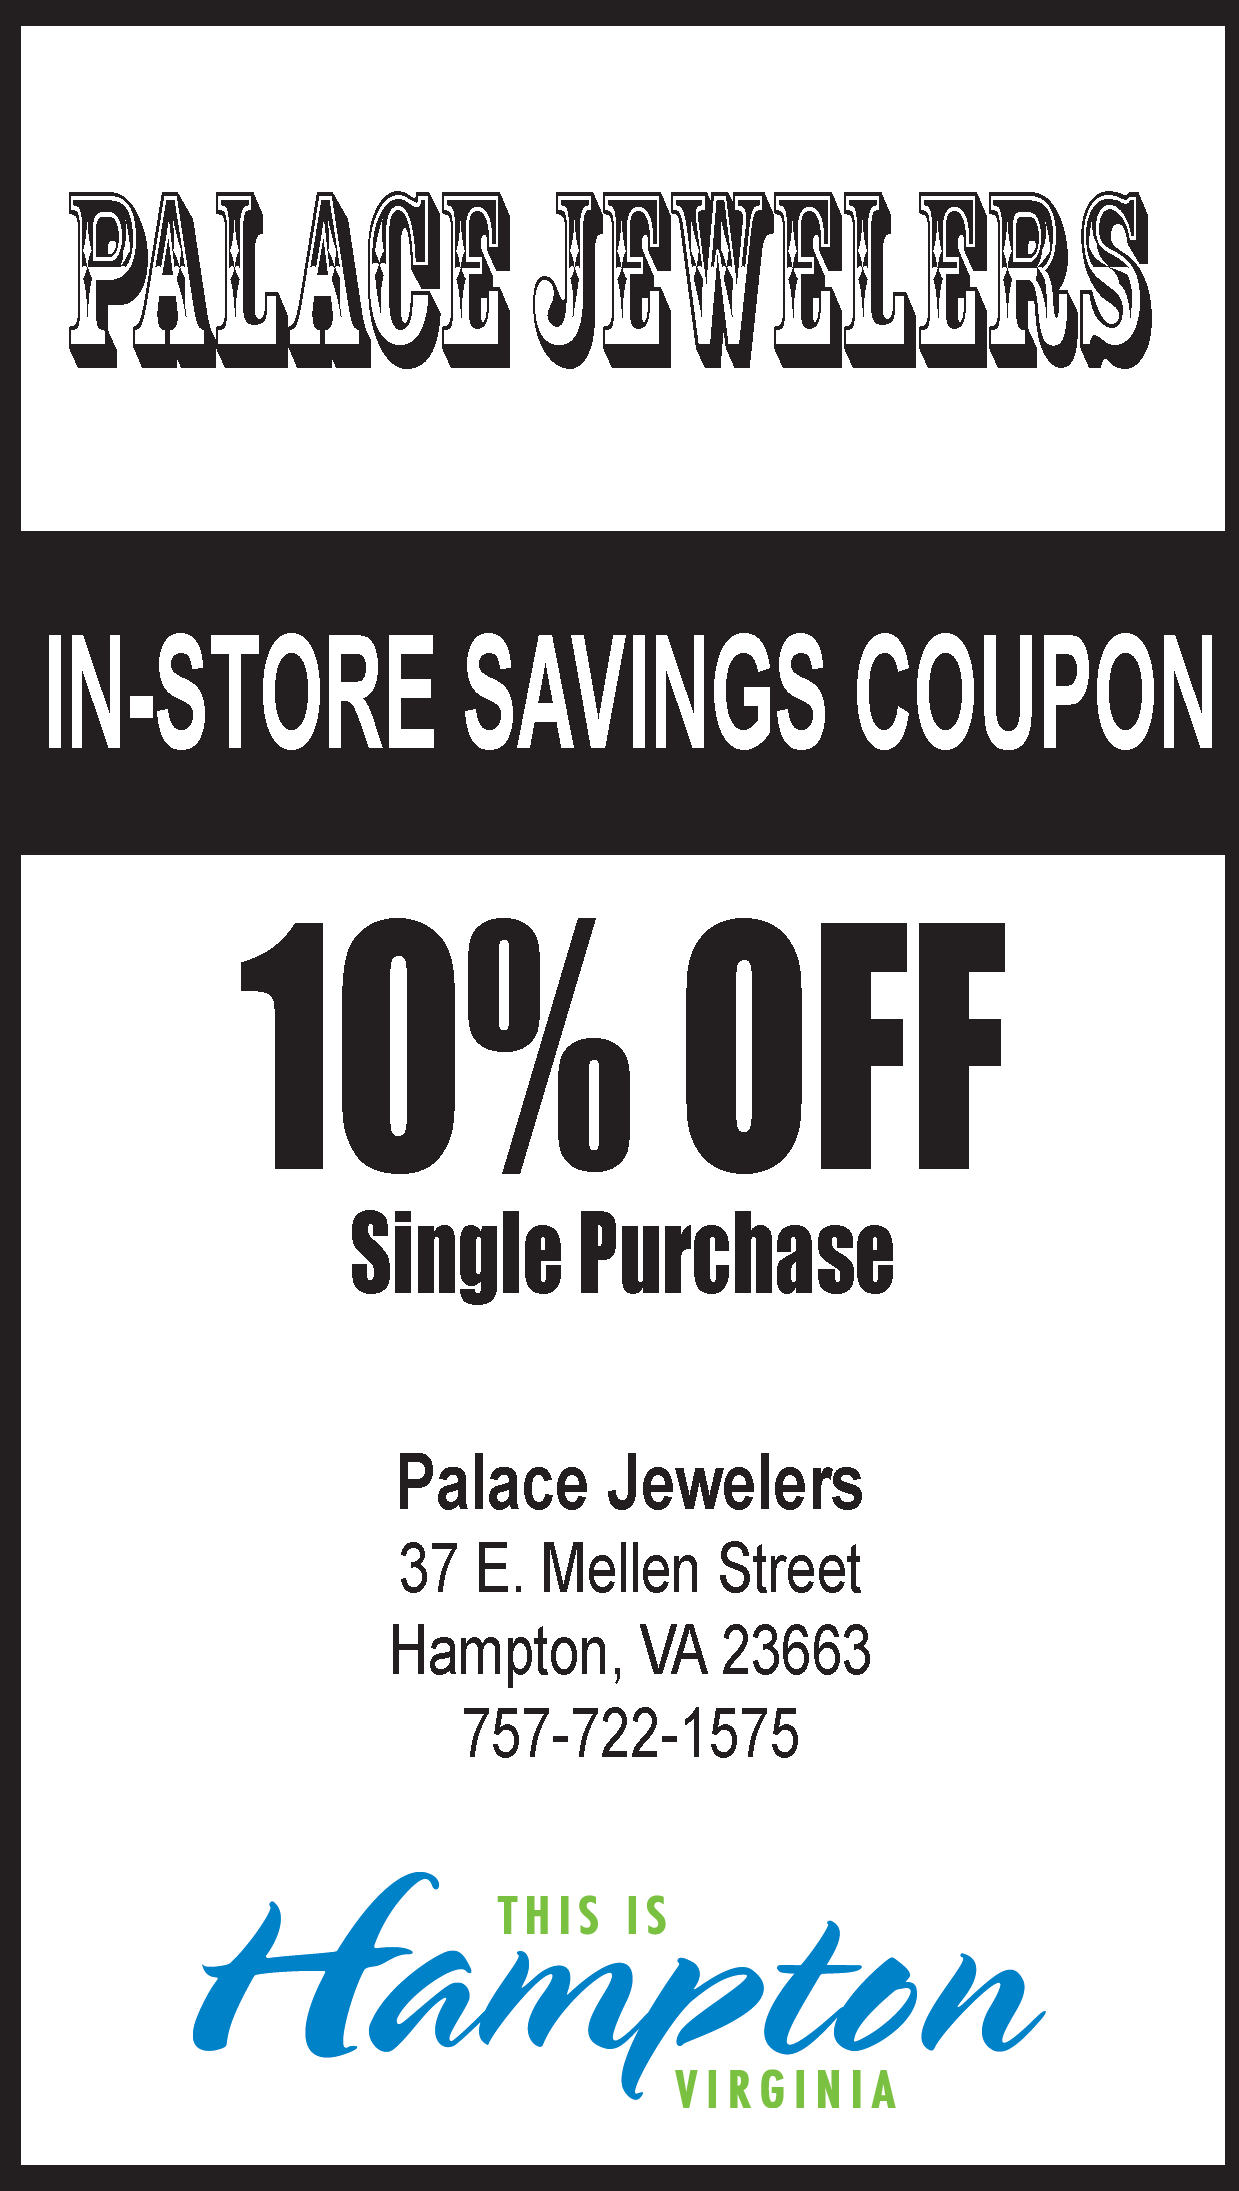 Palace Jewelers